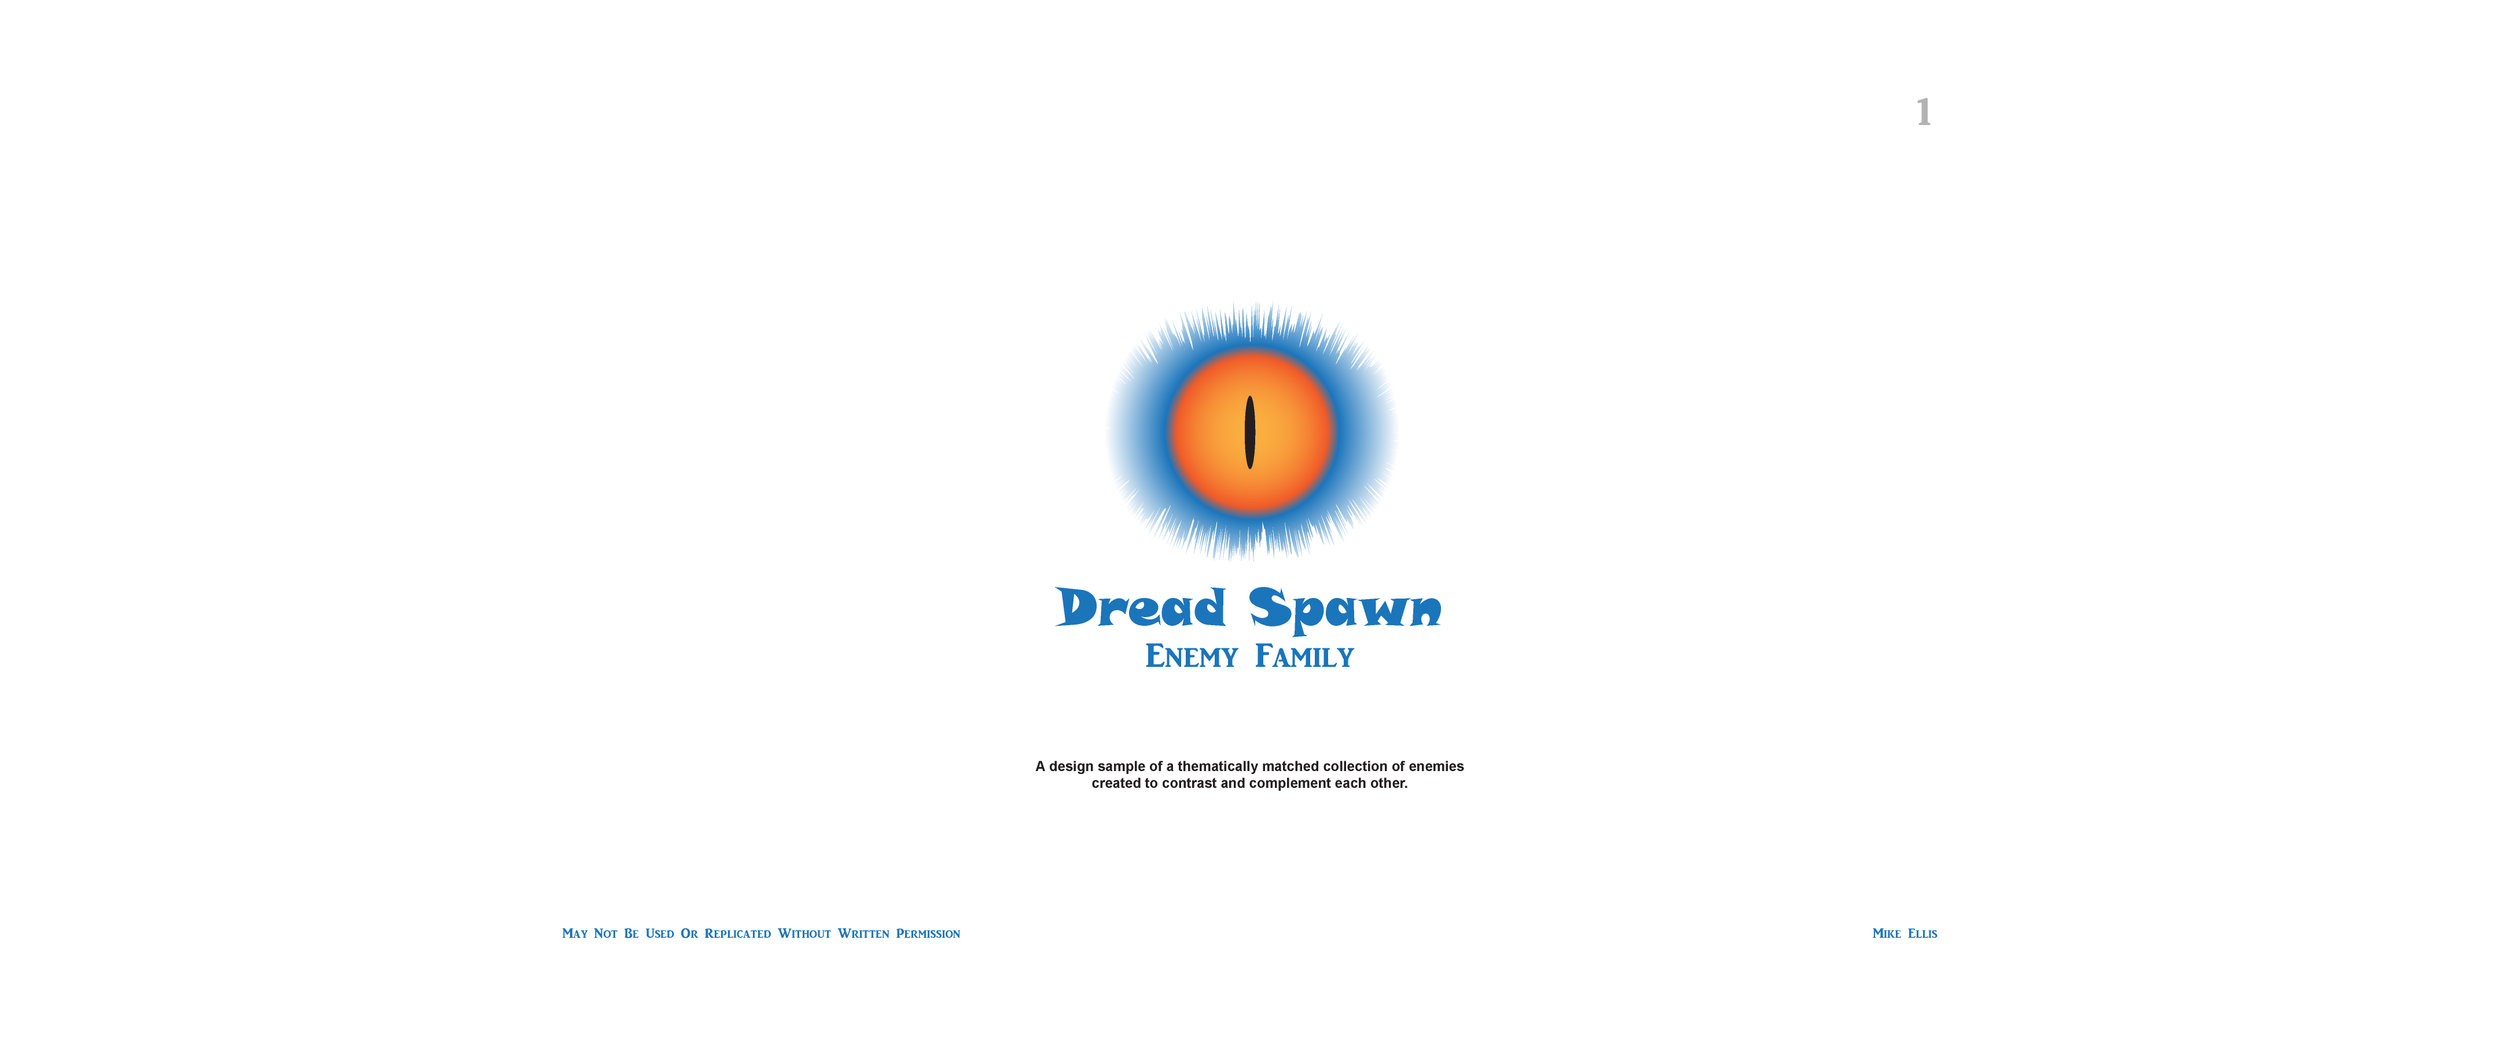 Dread-Spawn-1-Wide.jpg